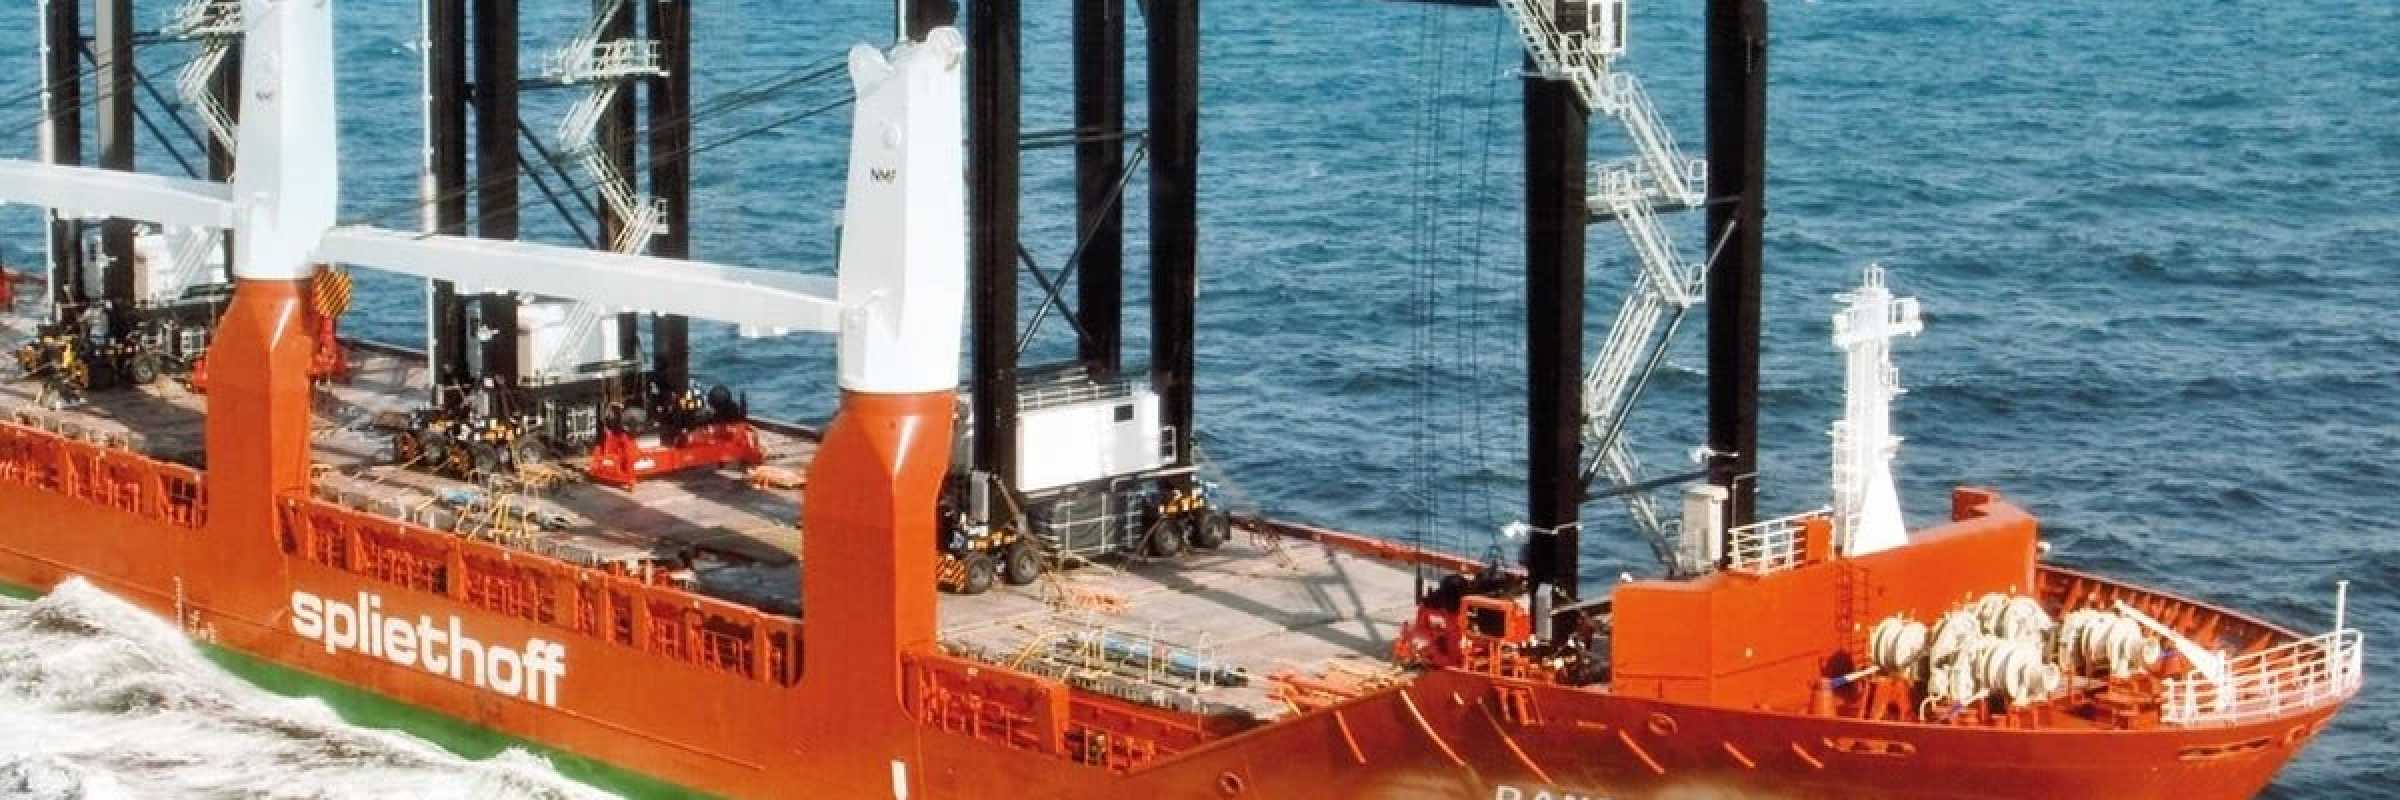 AST Marine Networks to provide global VSAT services to Spliethoff Group